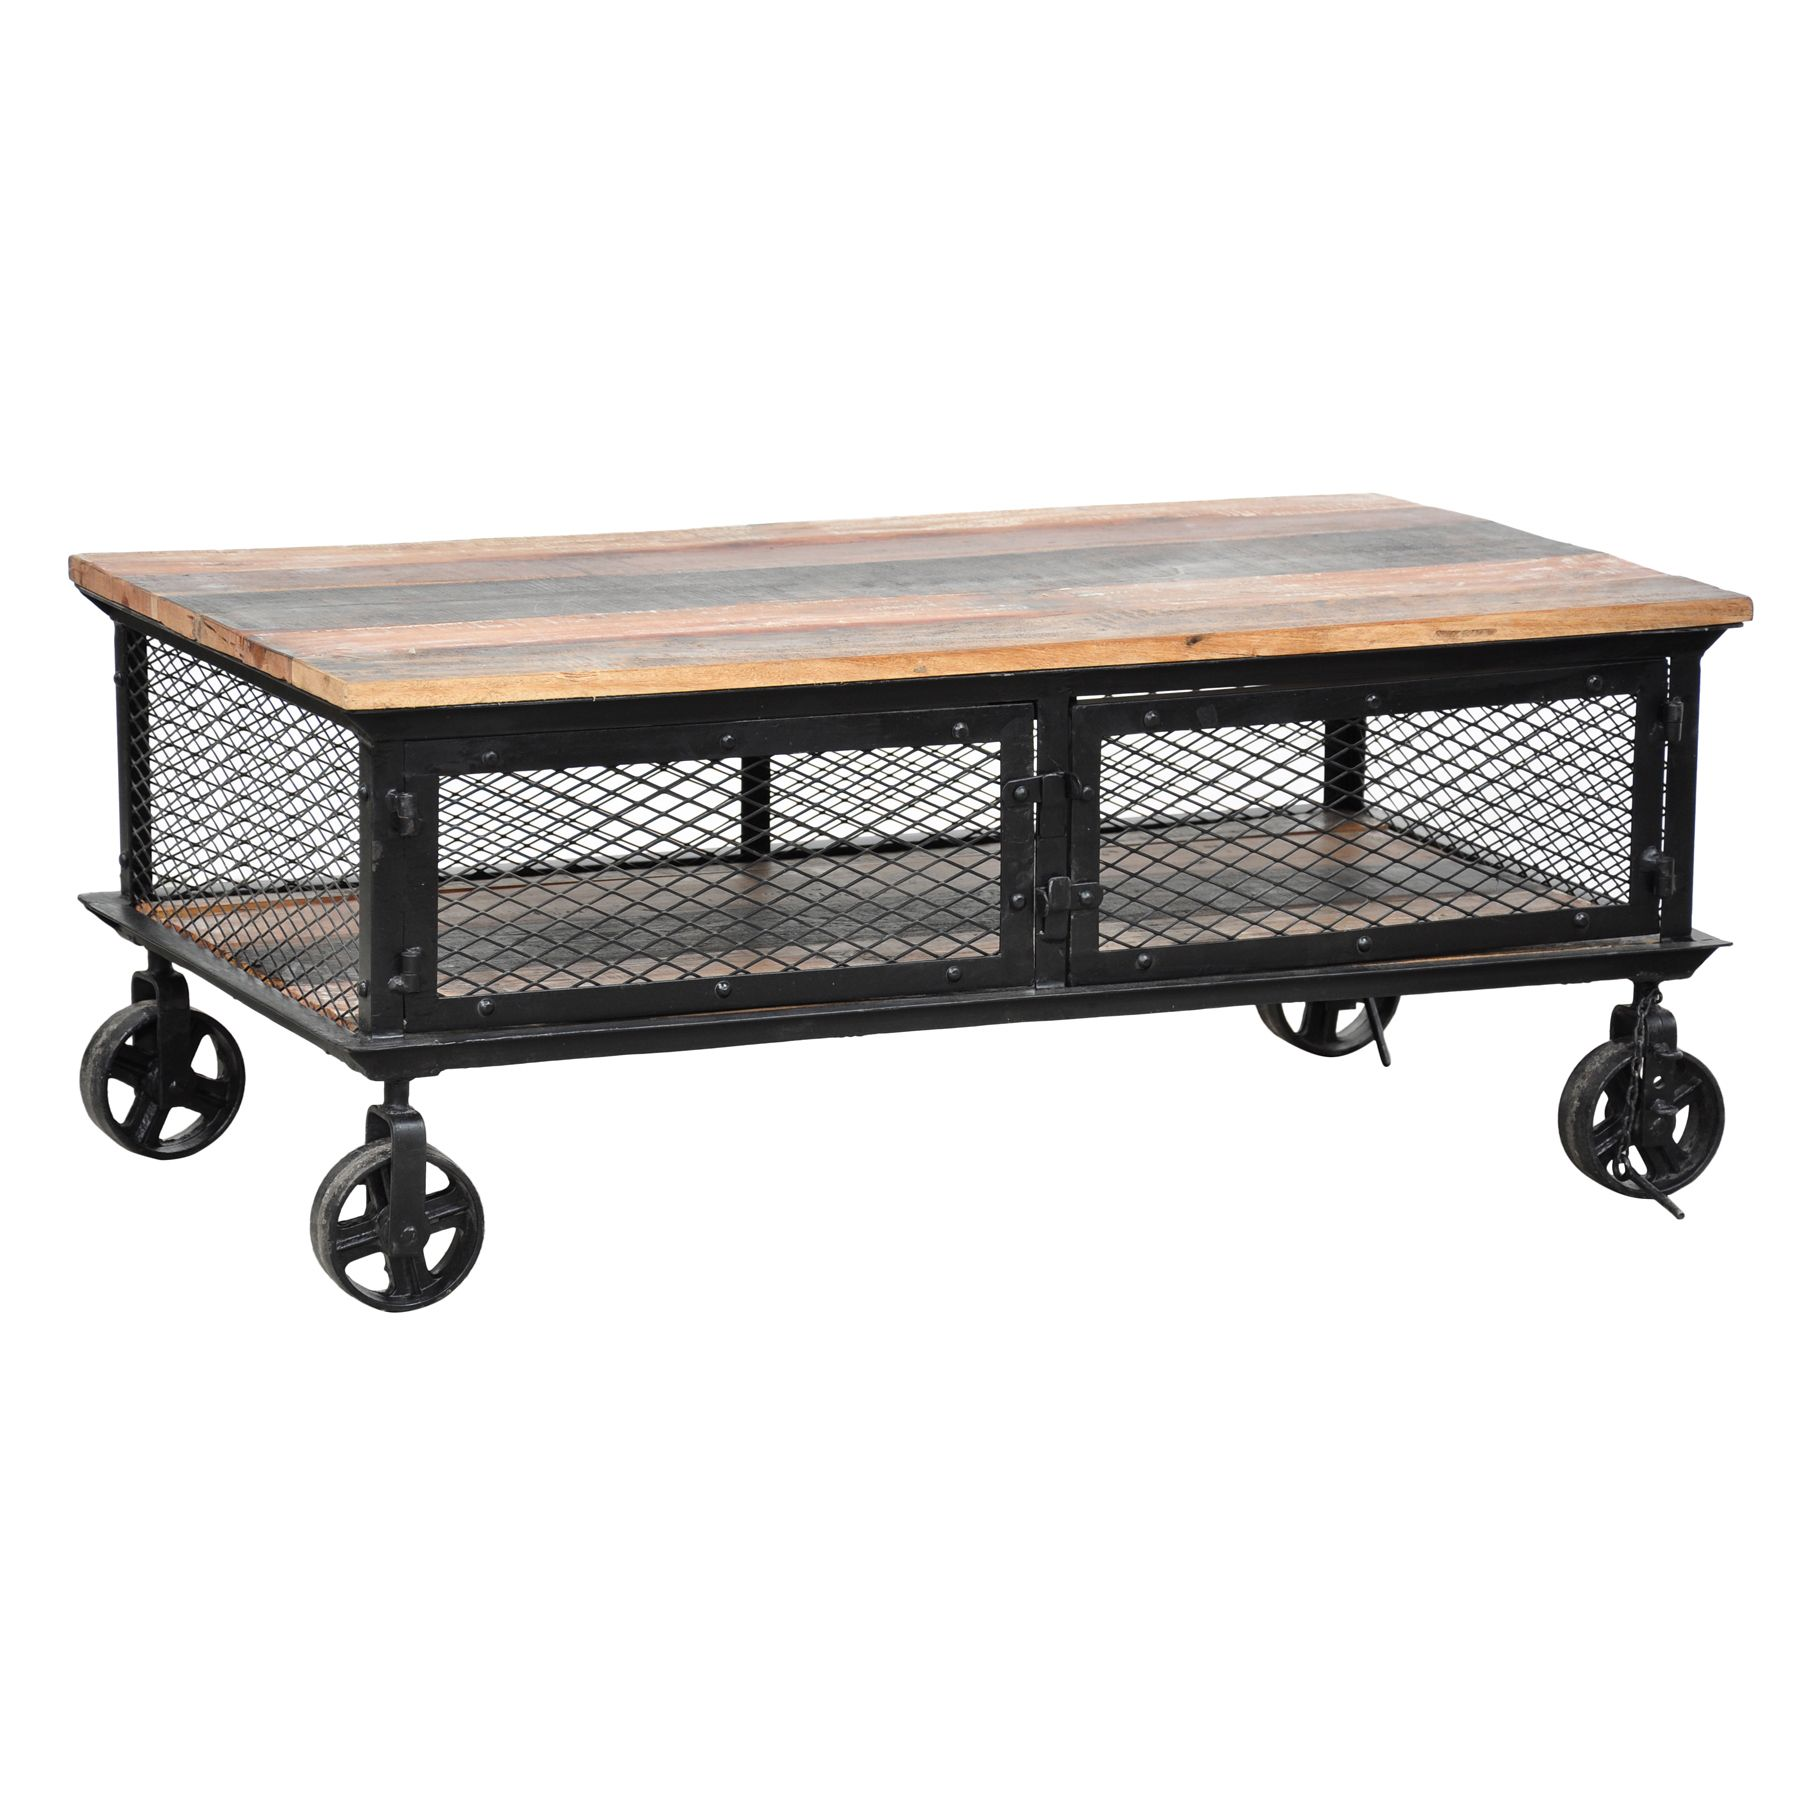 Add a touch of urban and industrial flair to your home decor with this modern Miles Coffee Table. Hand carved of recycled wood, this coffee table features an iron mesh base with two small doors to provide storage space.